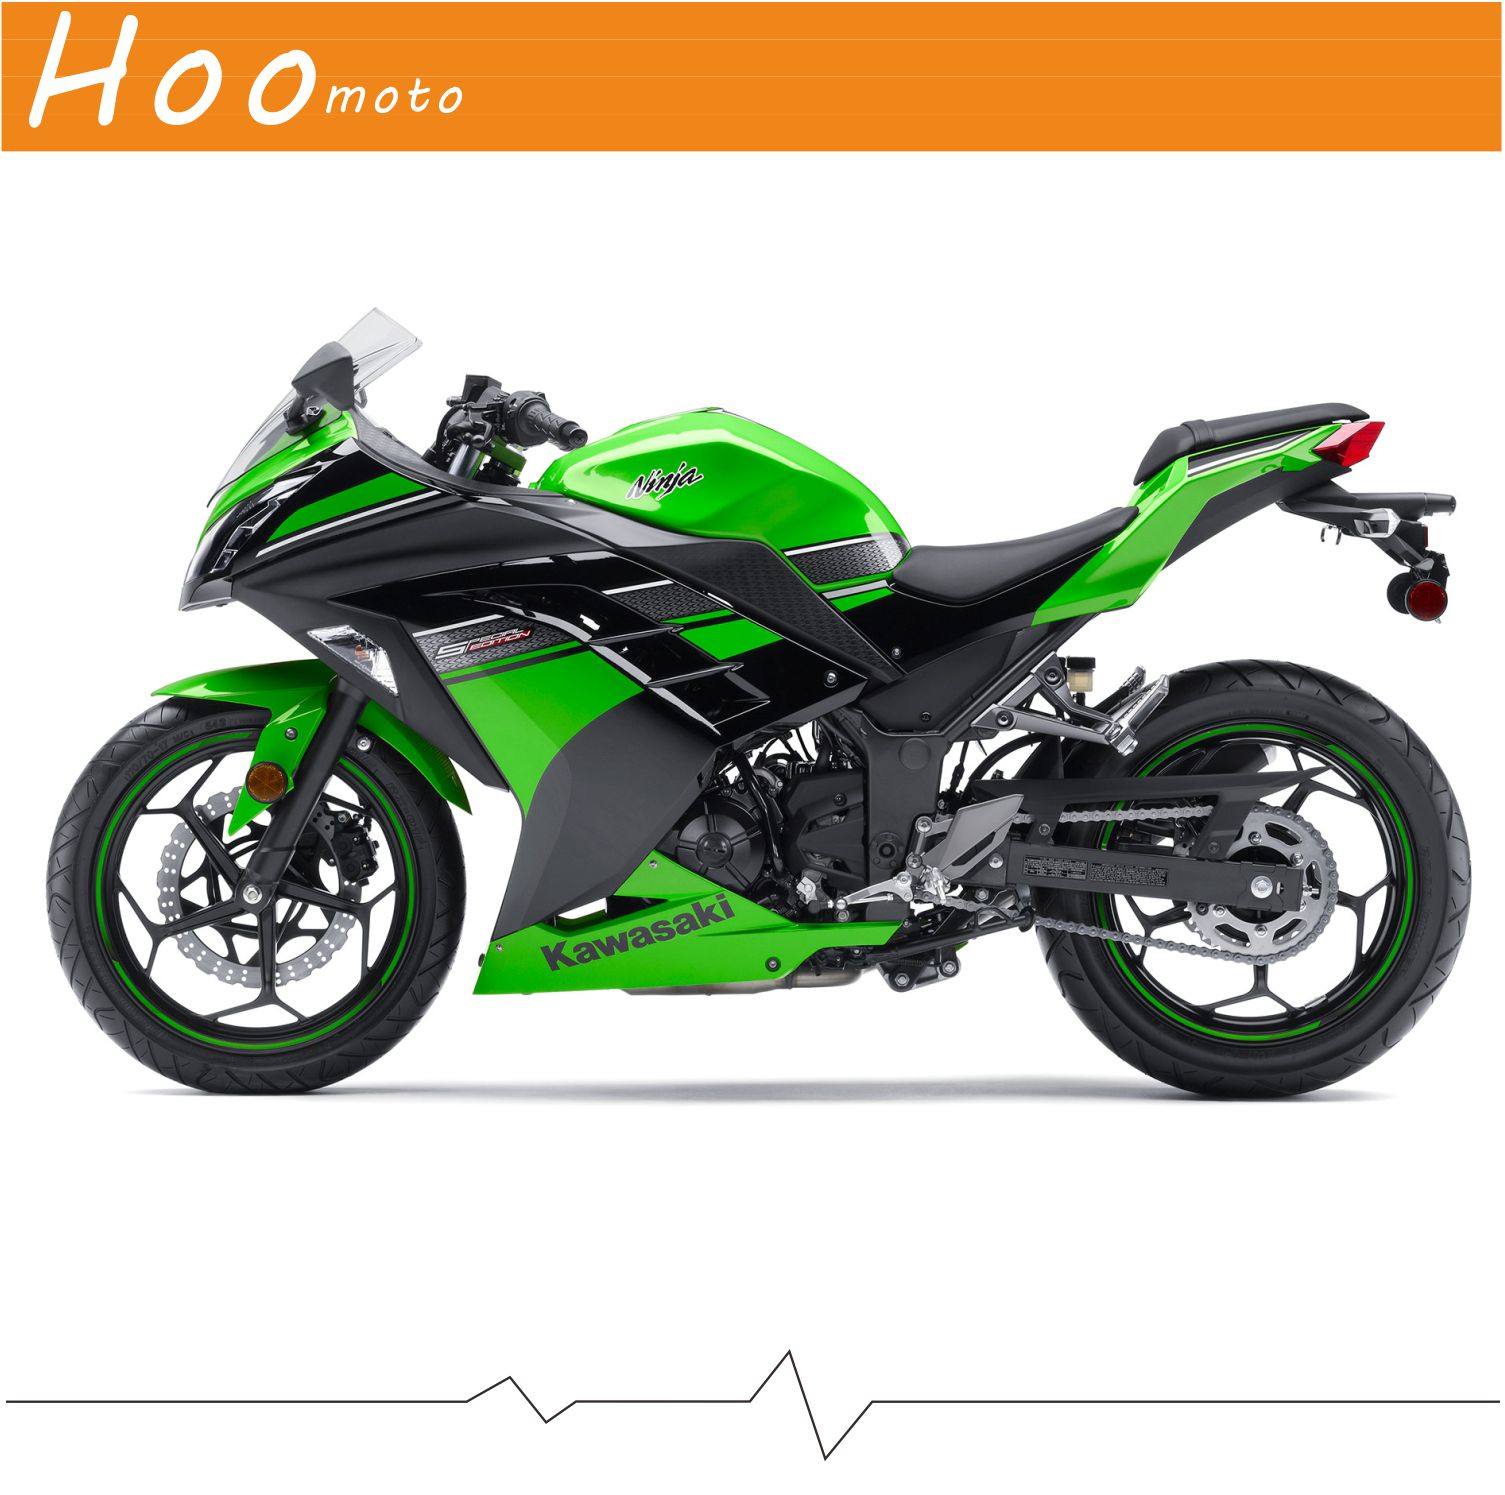 Ninja 300 full decals stickers graphics kit set motorcycle whole vehicle 3m decals stickers for kawasaki ex 2013 r green fairing in decals stickers from